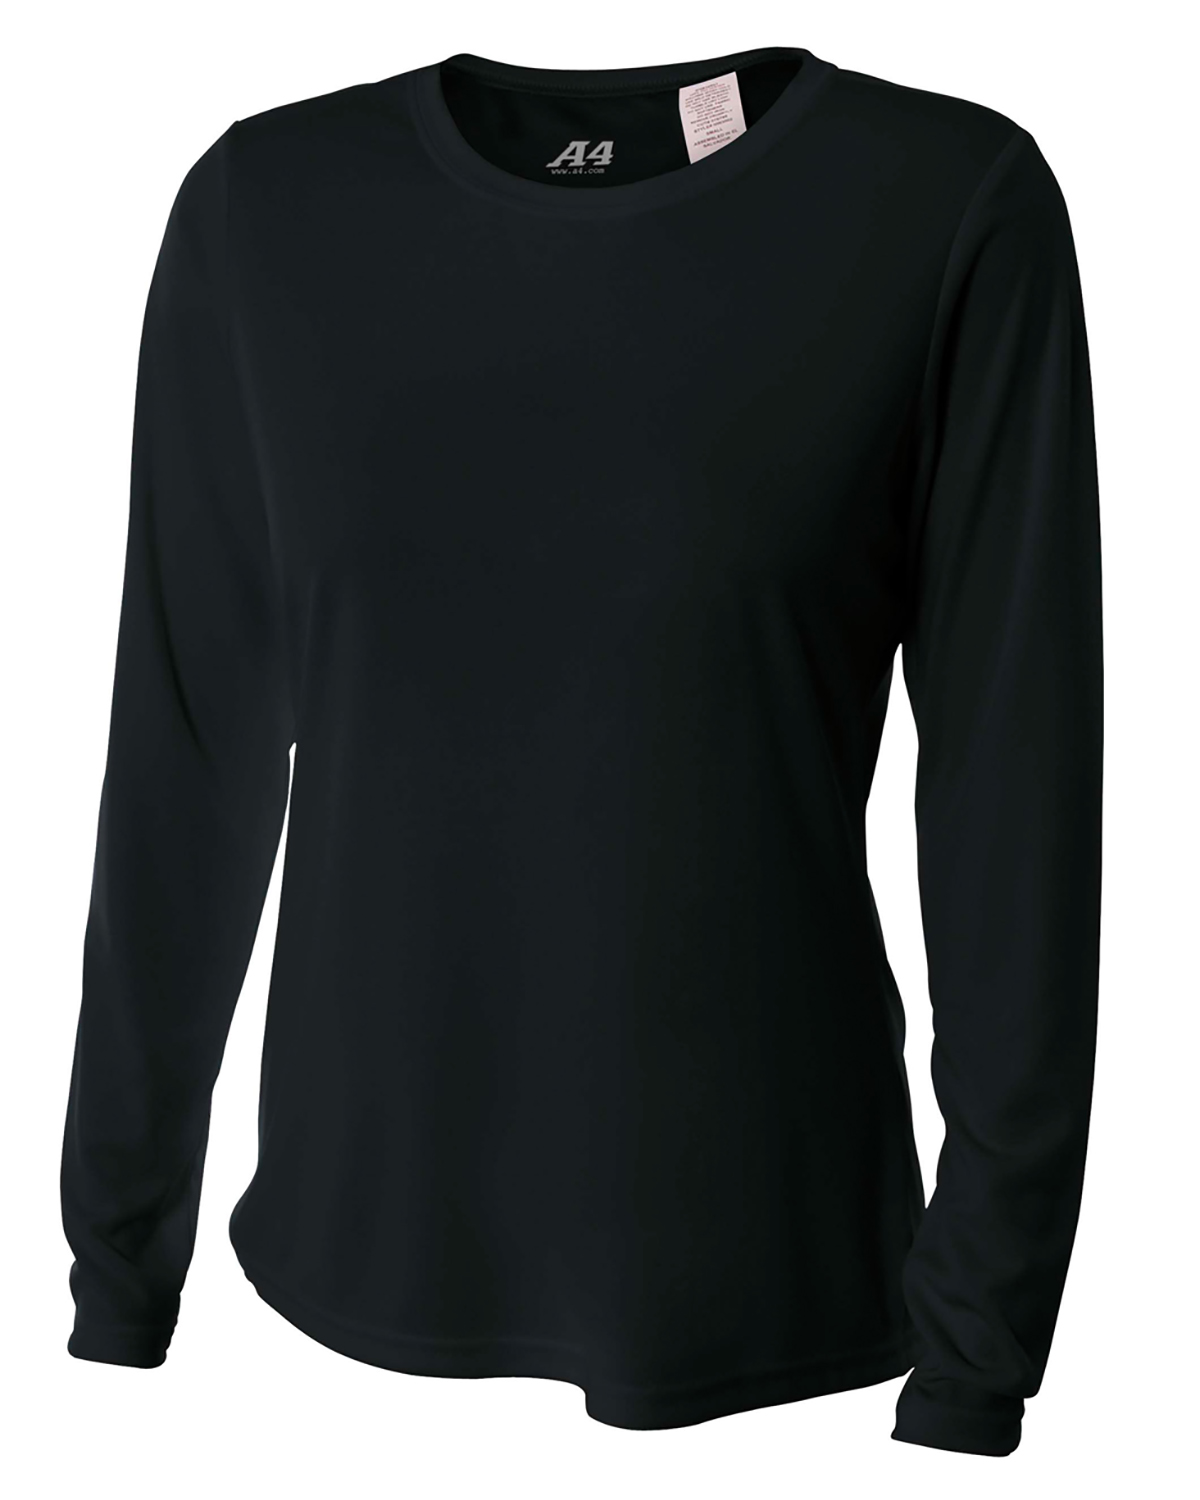 A4 NW3002 - Women's Long Sleeve Cooling Performance ...